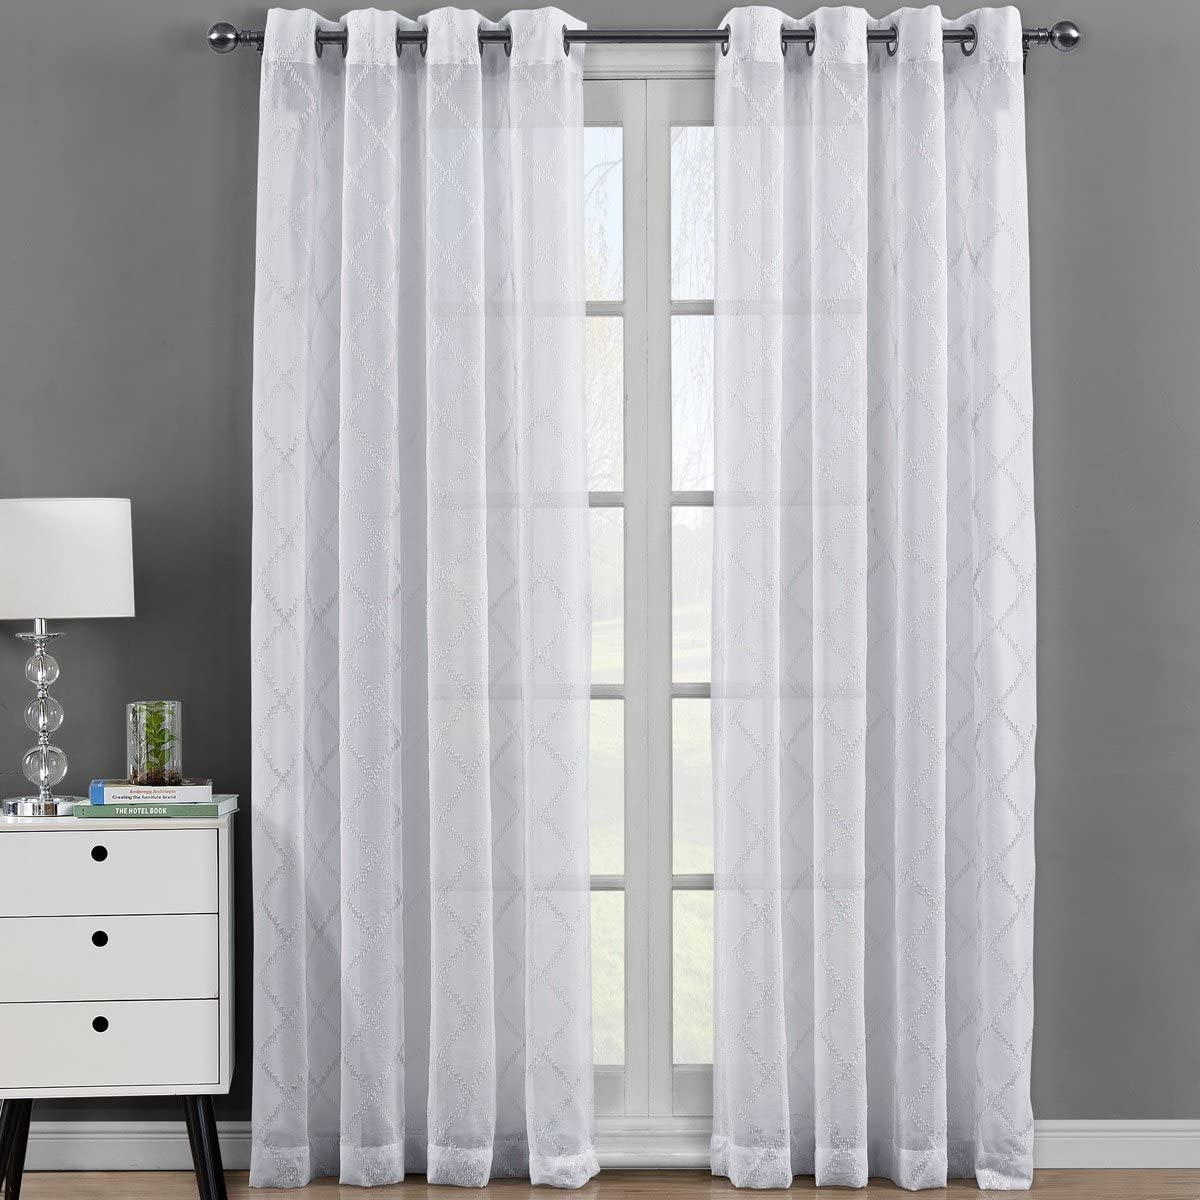 Royal Bedding Harvard White Sheer Panels, Top Grommet Embroidered Sheer Curtain Panels, Set of 2, 54Wx108L inches Each